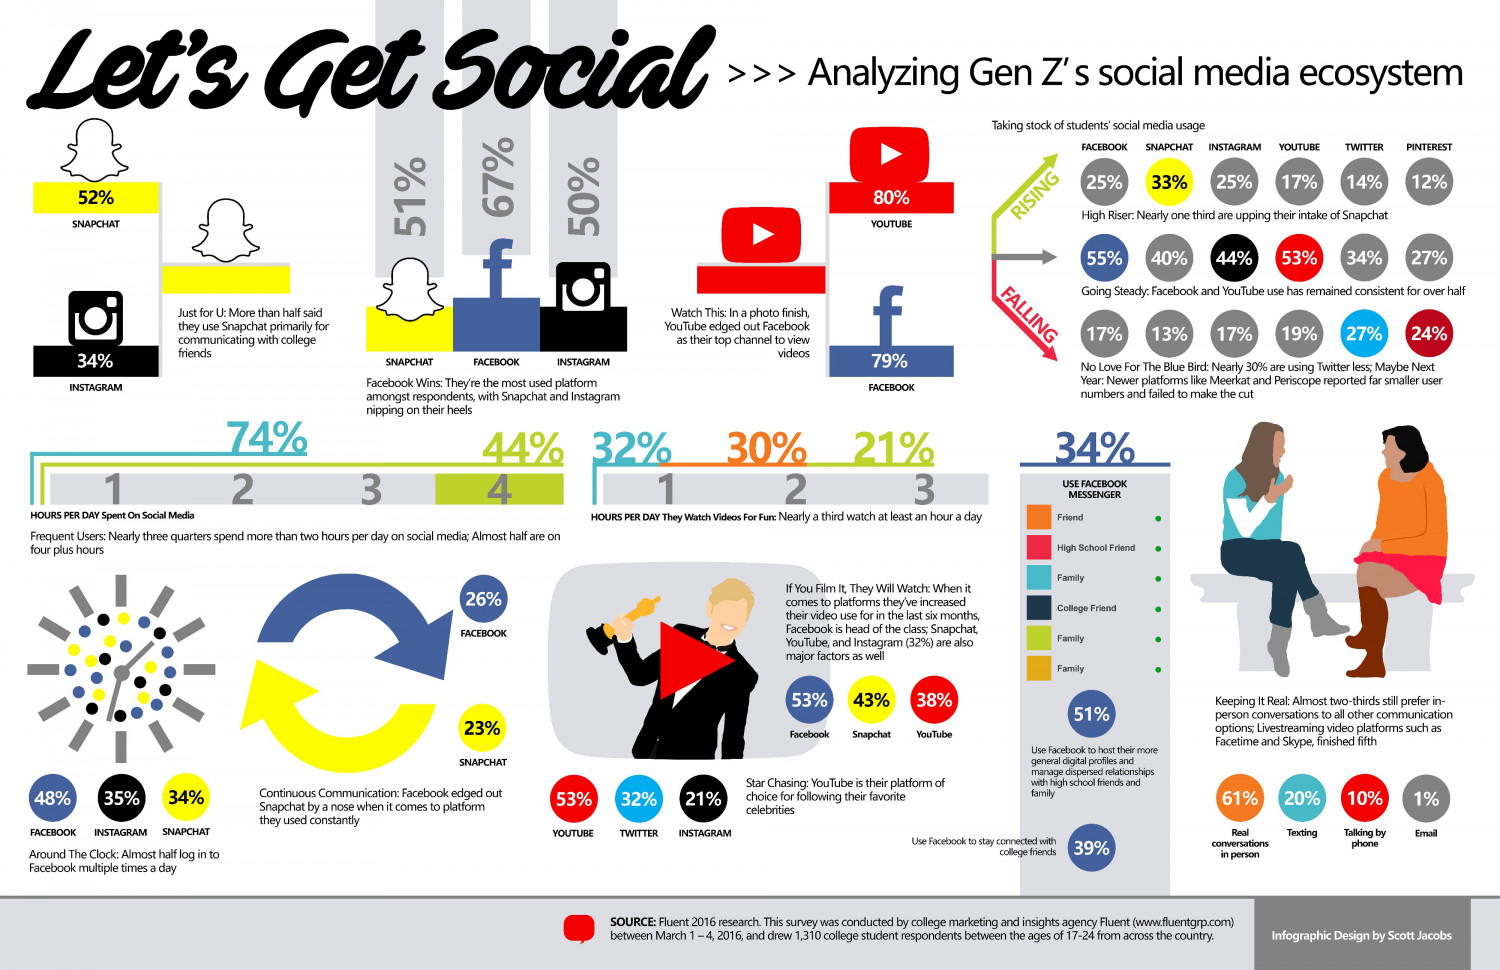 Analyzing Gen Z's Social Media Ecosystem Infographic